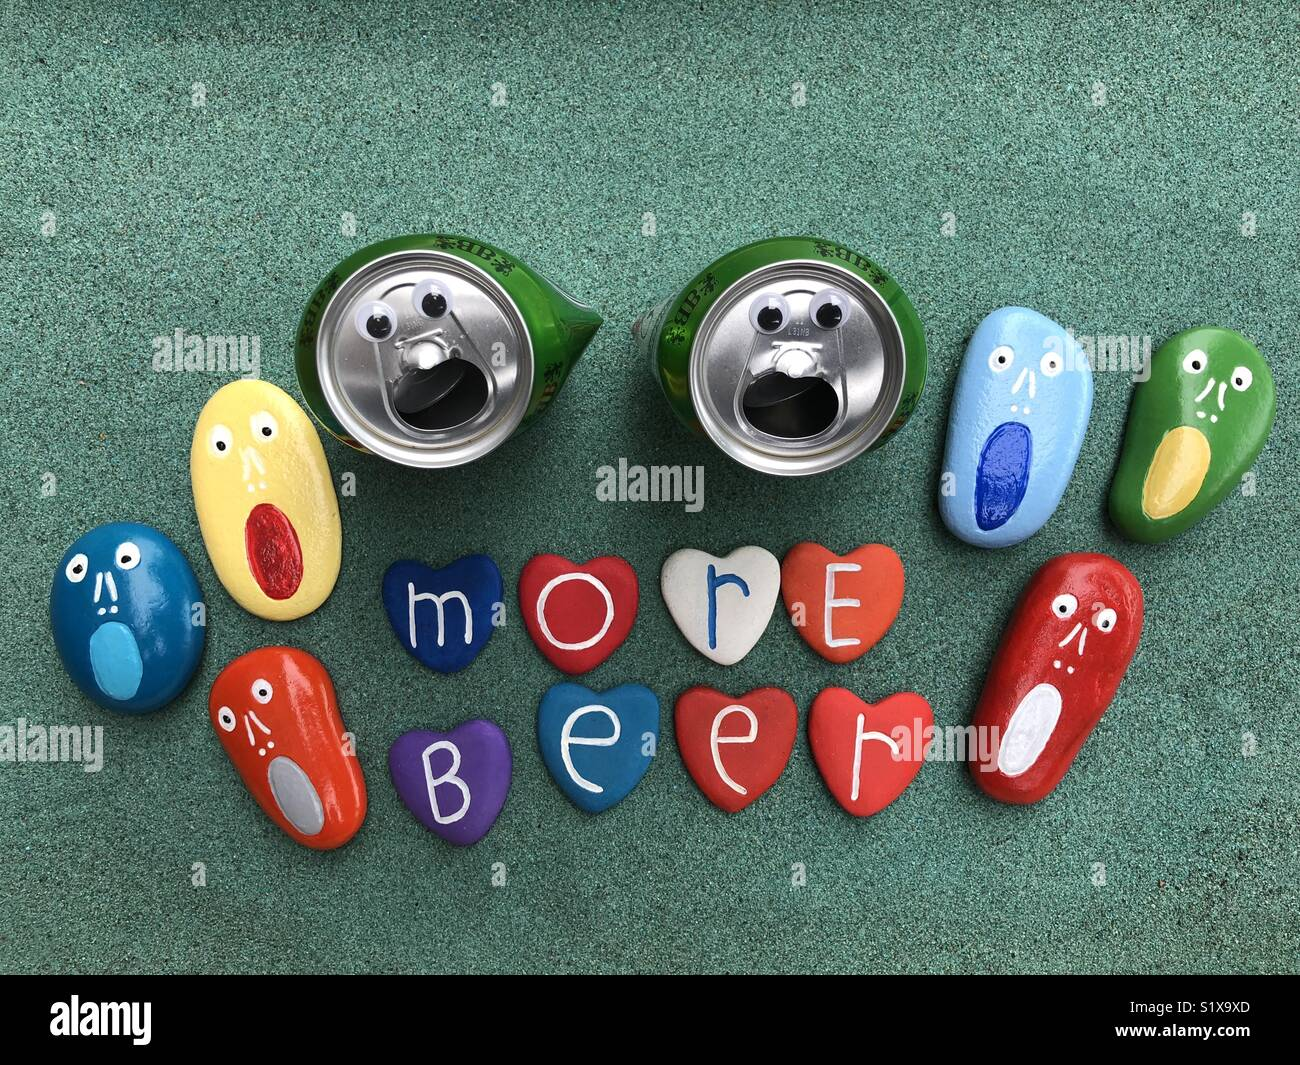 We need more beer - Stock Image